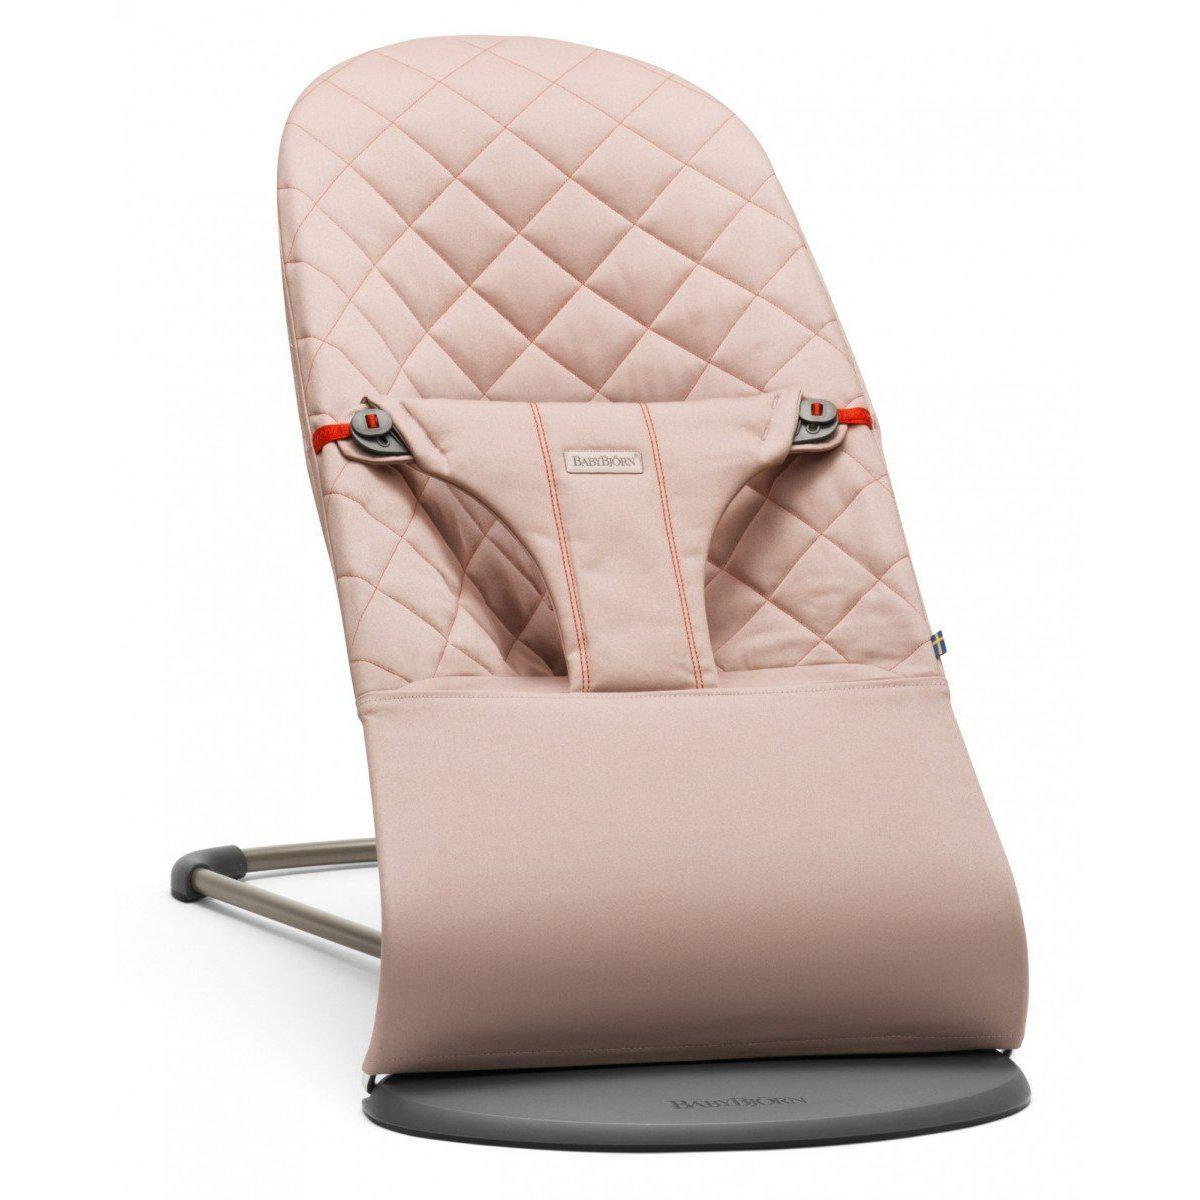 BabyBjorn Bouncer Bliss Old Rose Pink Cotton